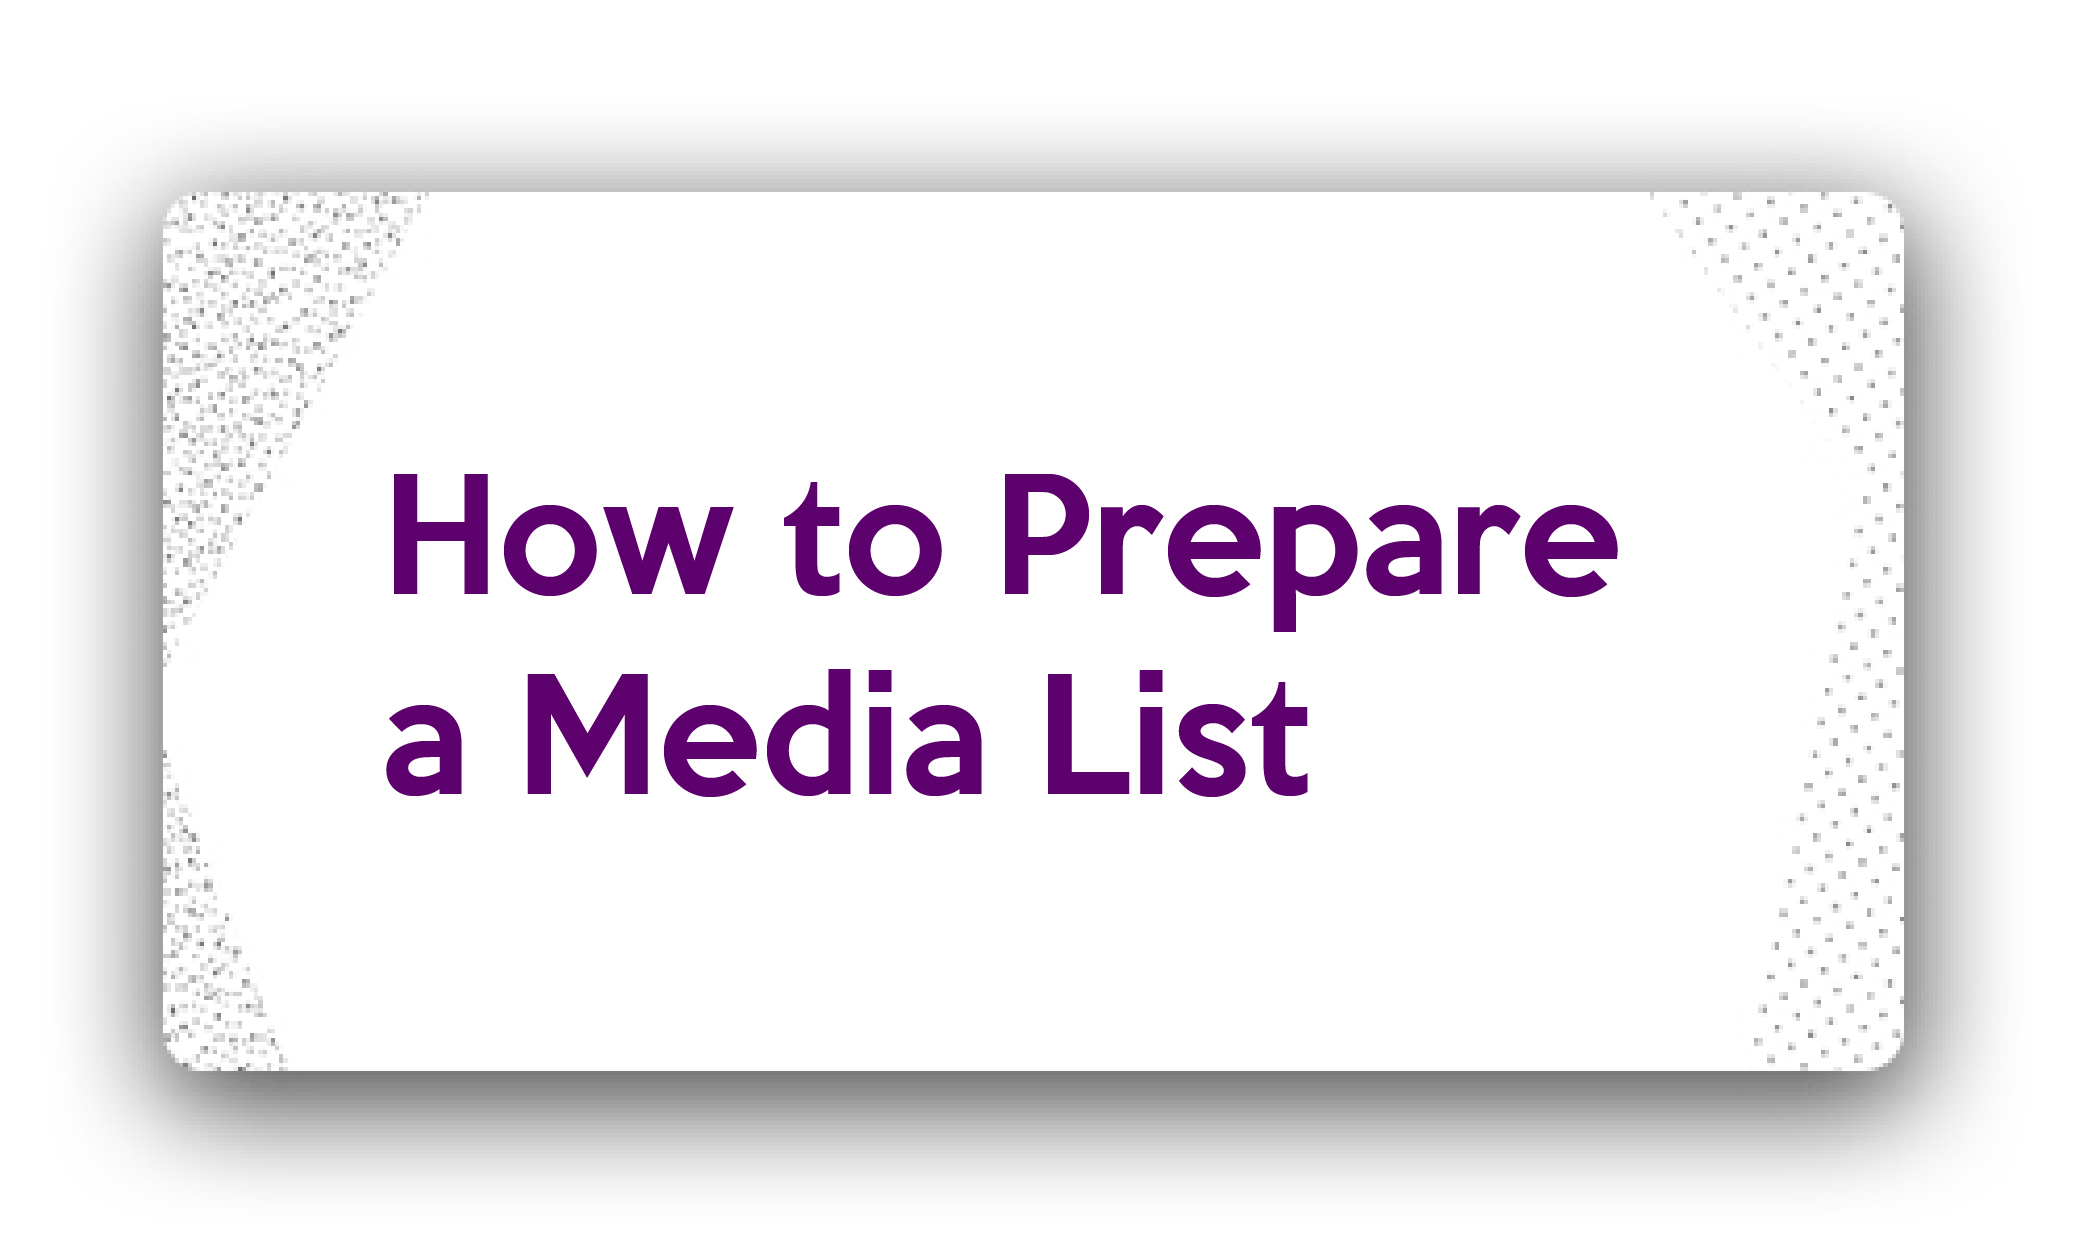 Title- How to Prepare a Media List